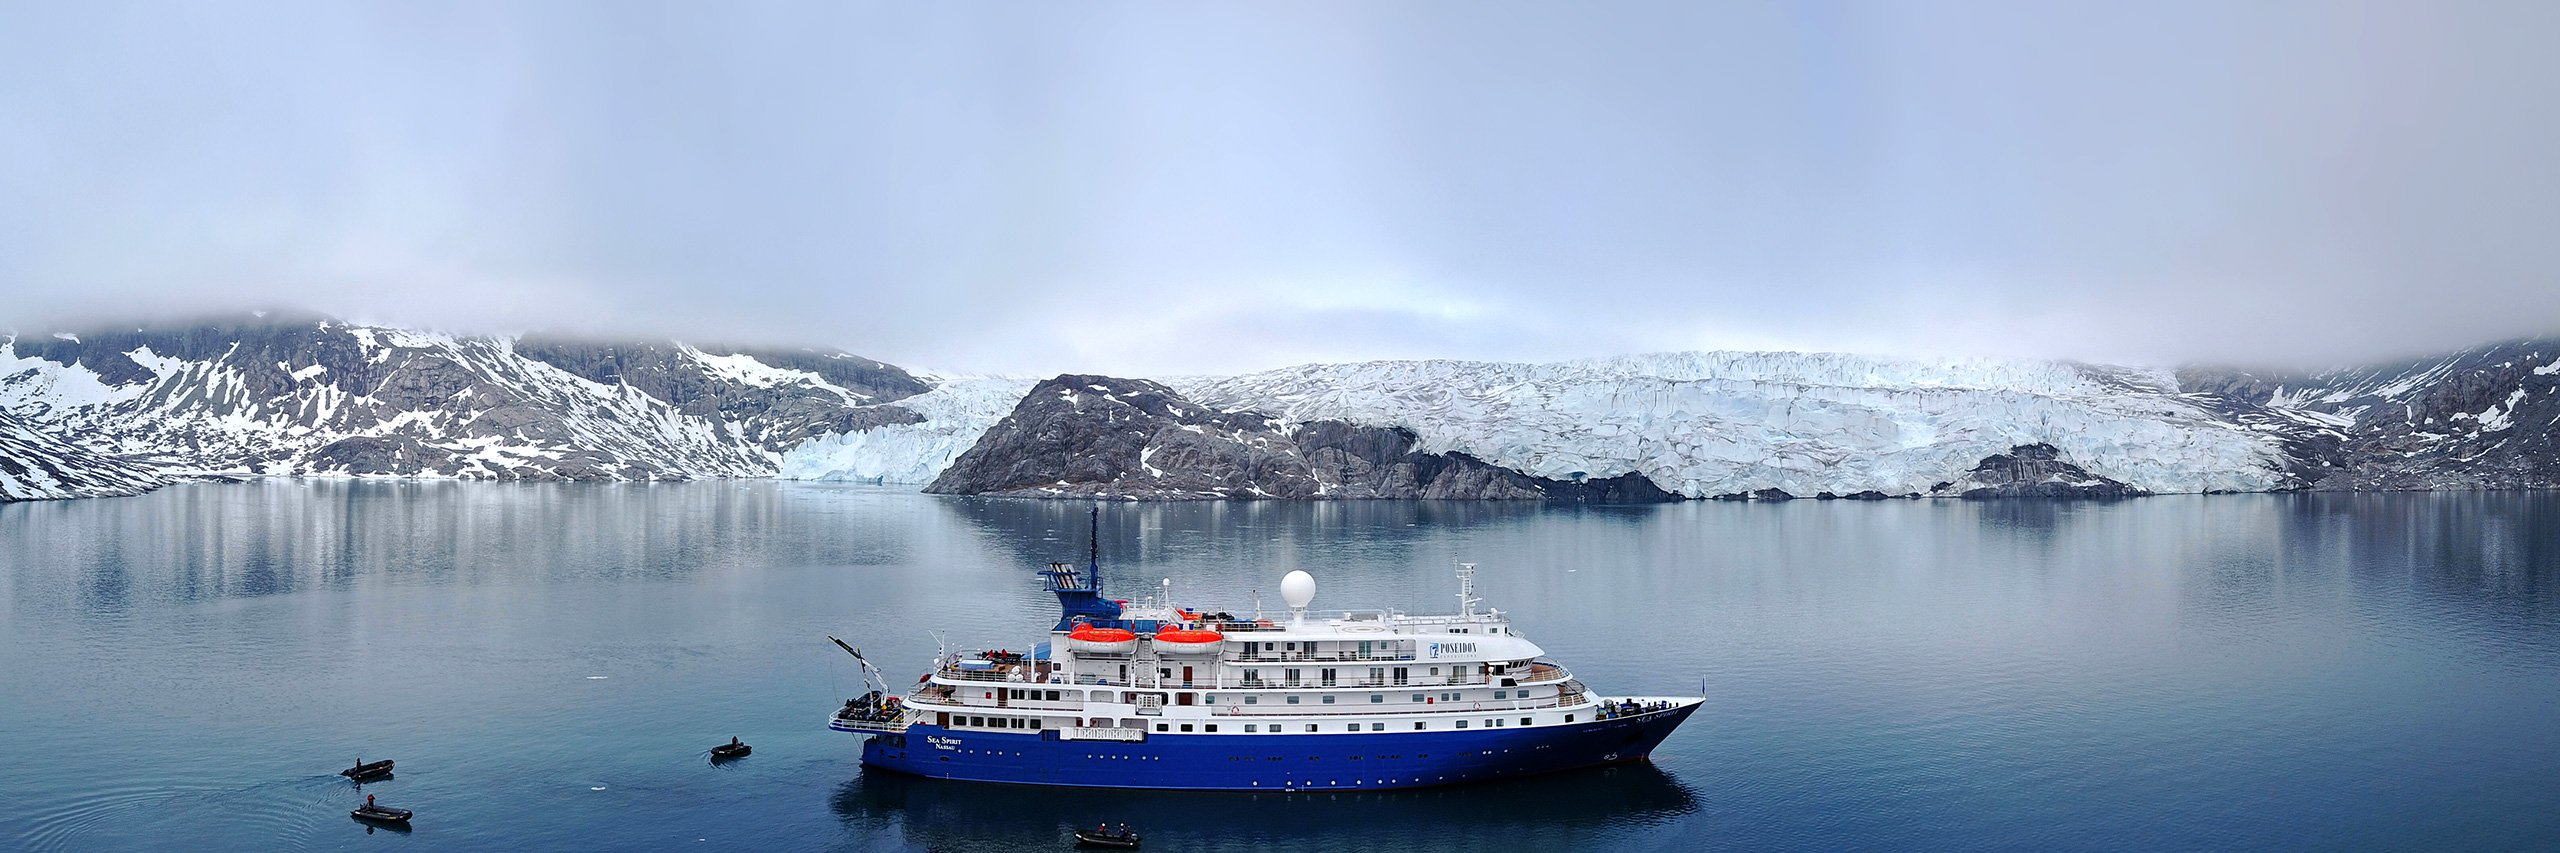 Sea Spirit, the ship servicing Legendary History & Wild Nature